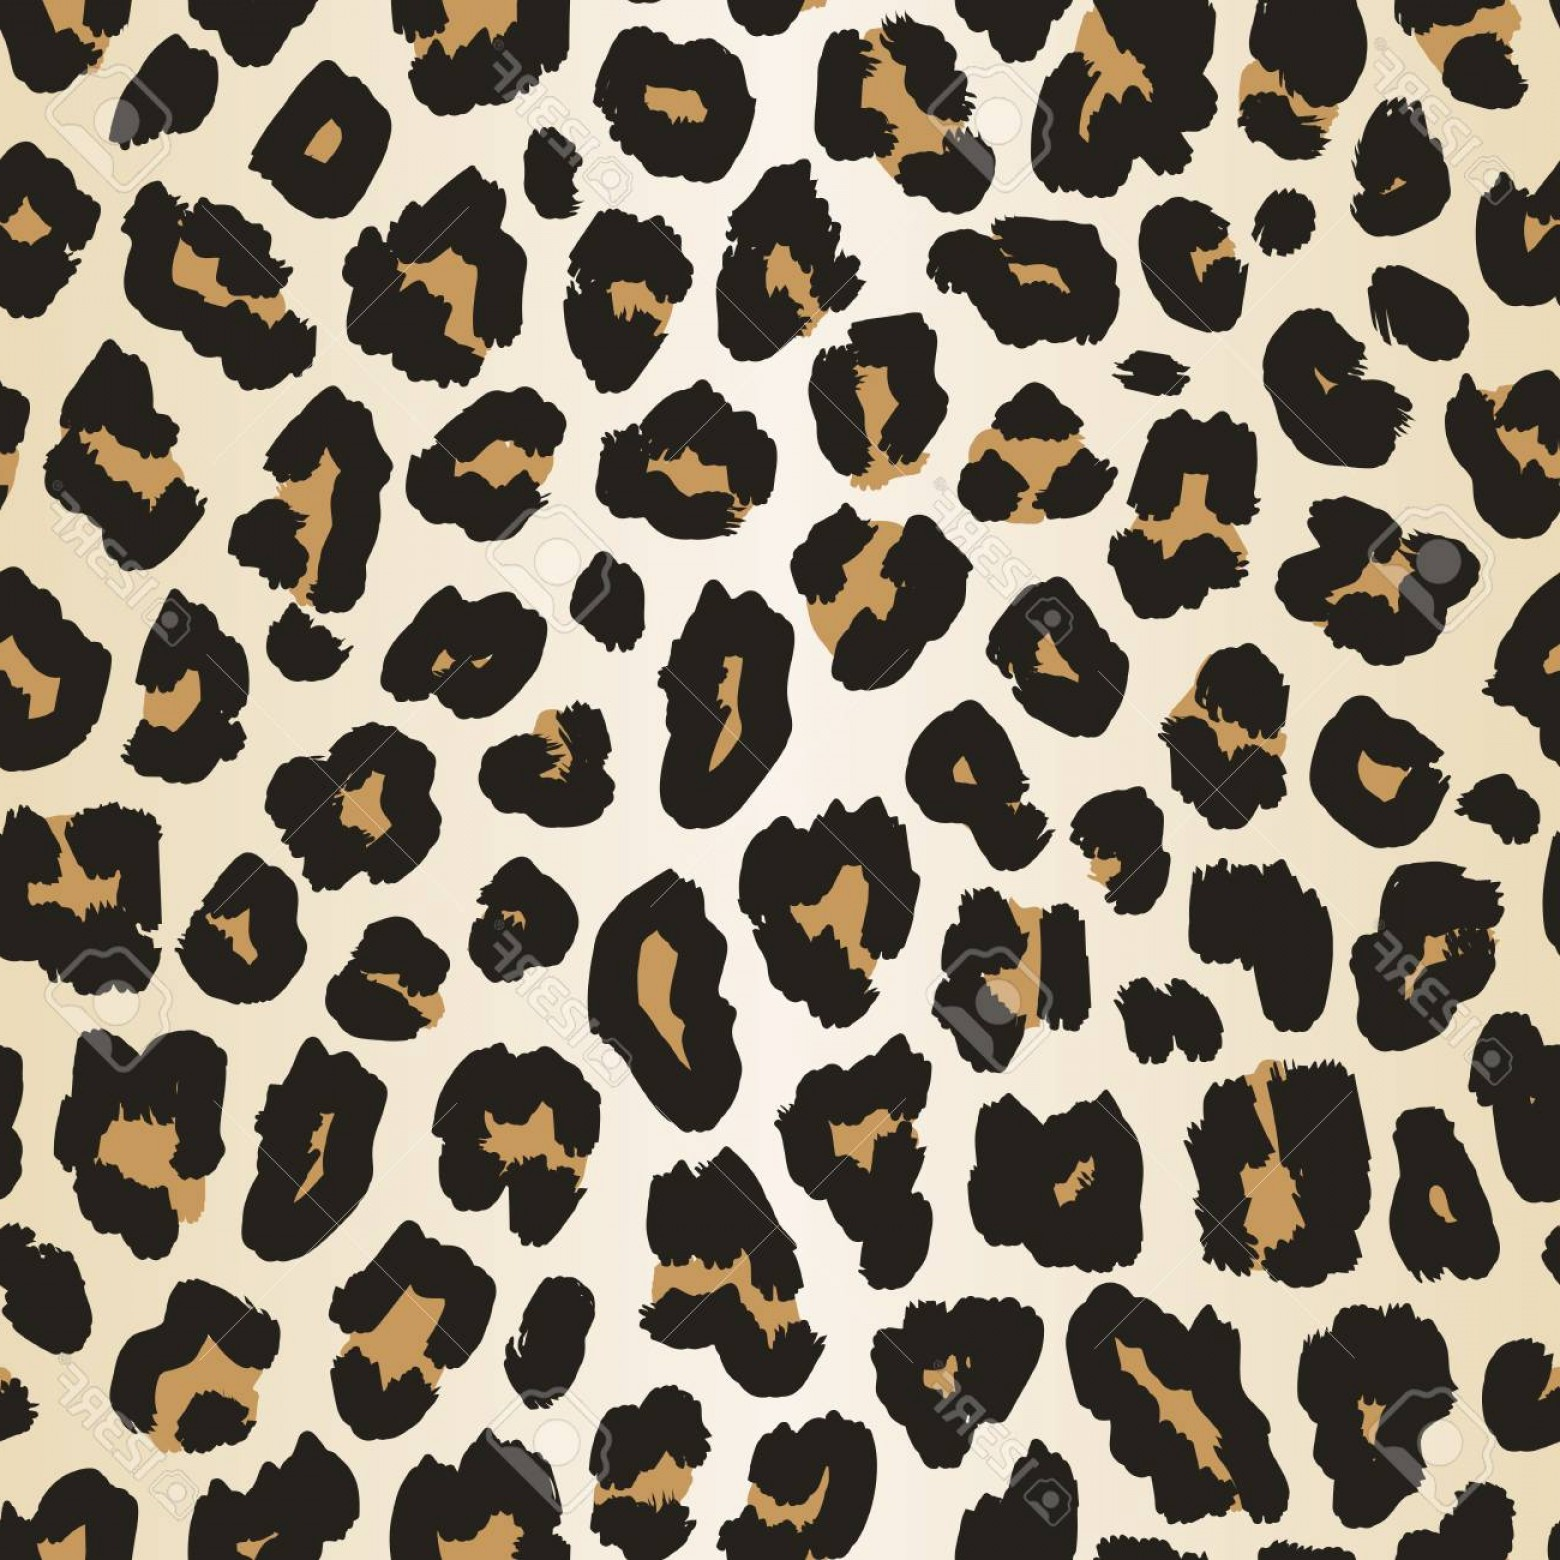 Jaguar Spots Vector: Photostock Vector Leopard Skin Pattern Vector Seamless Background Realistic Animal Print Texture Of Jaguar Leopard Che